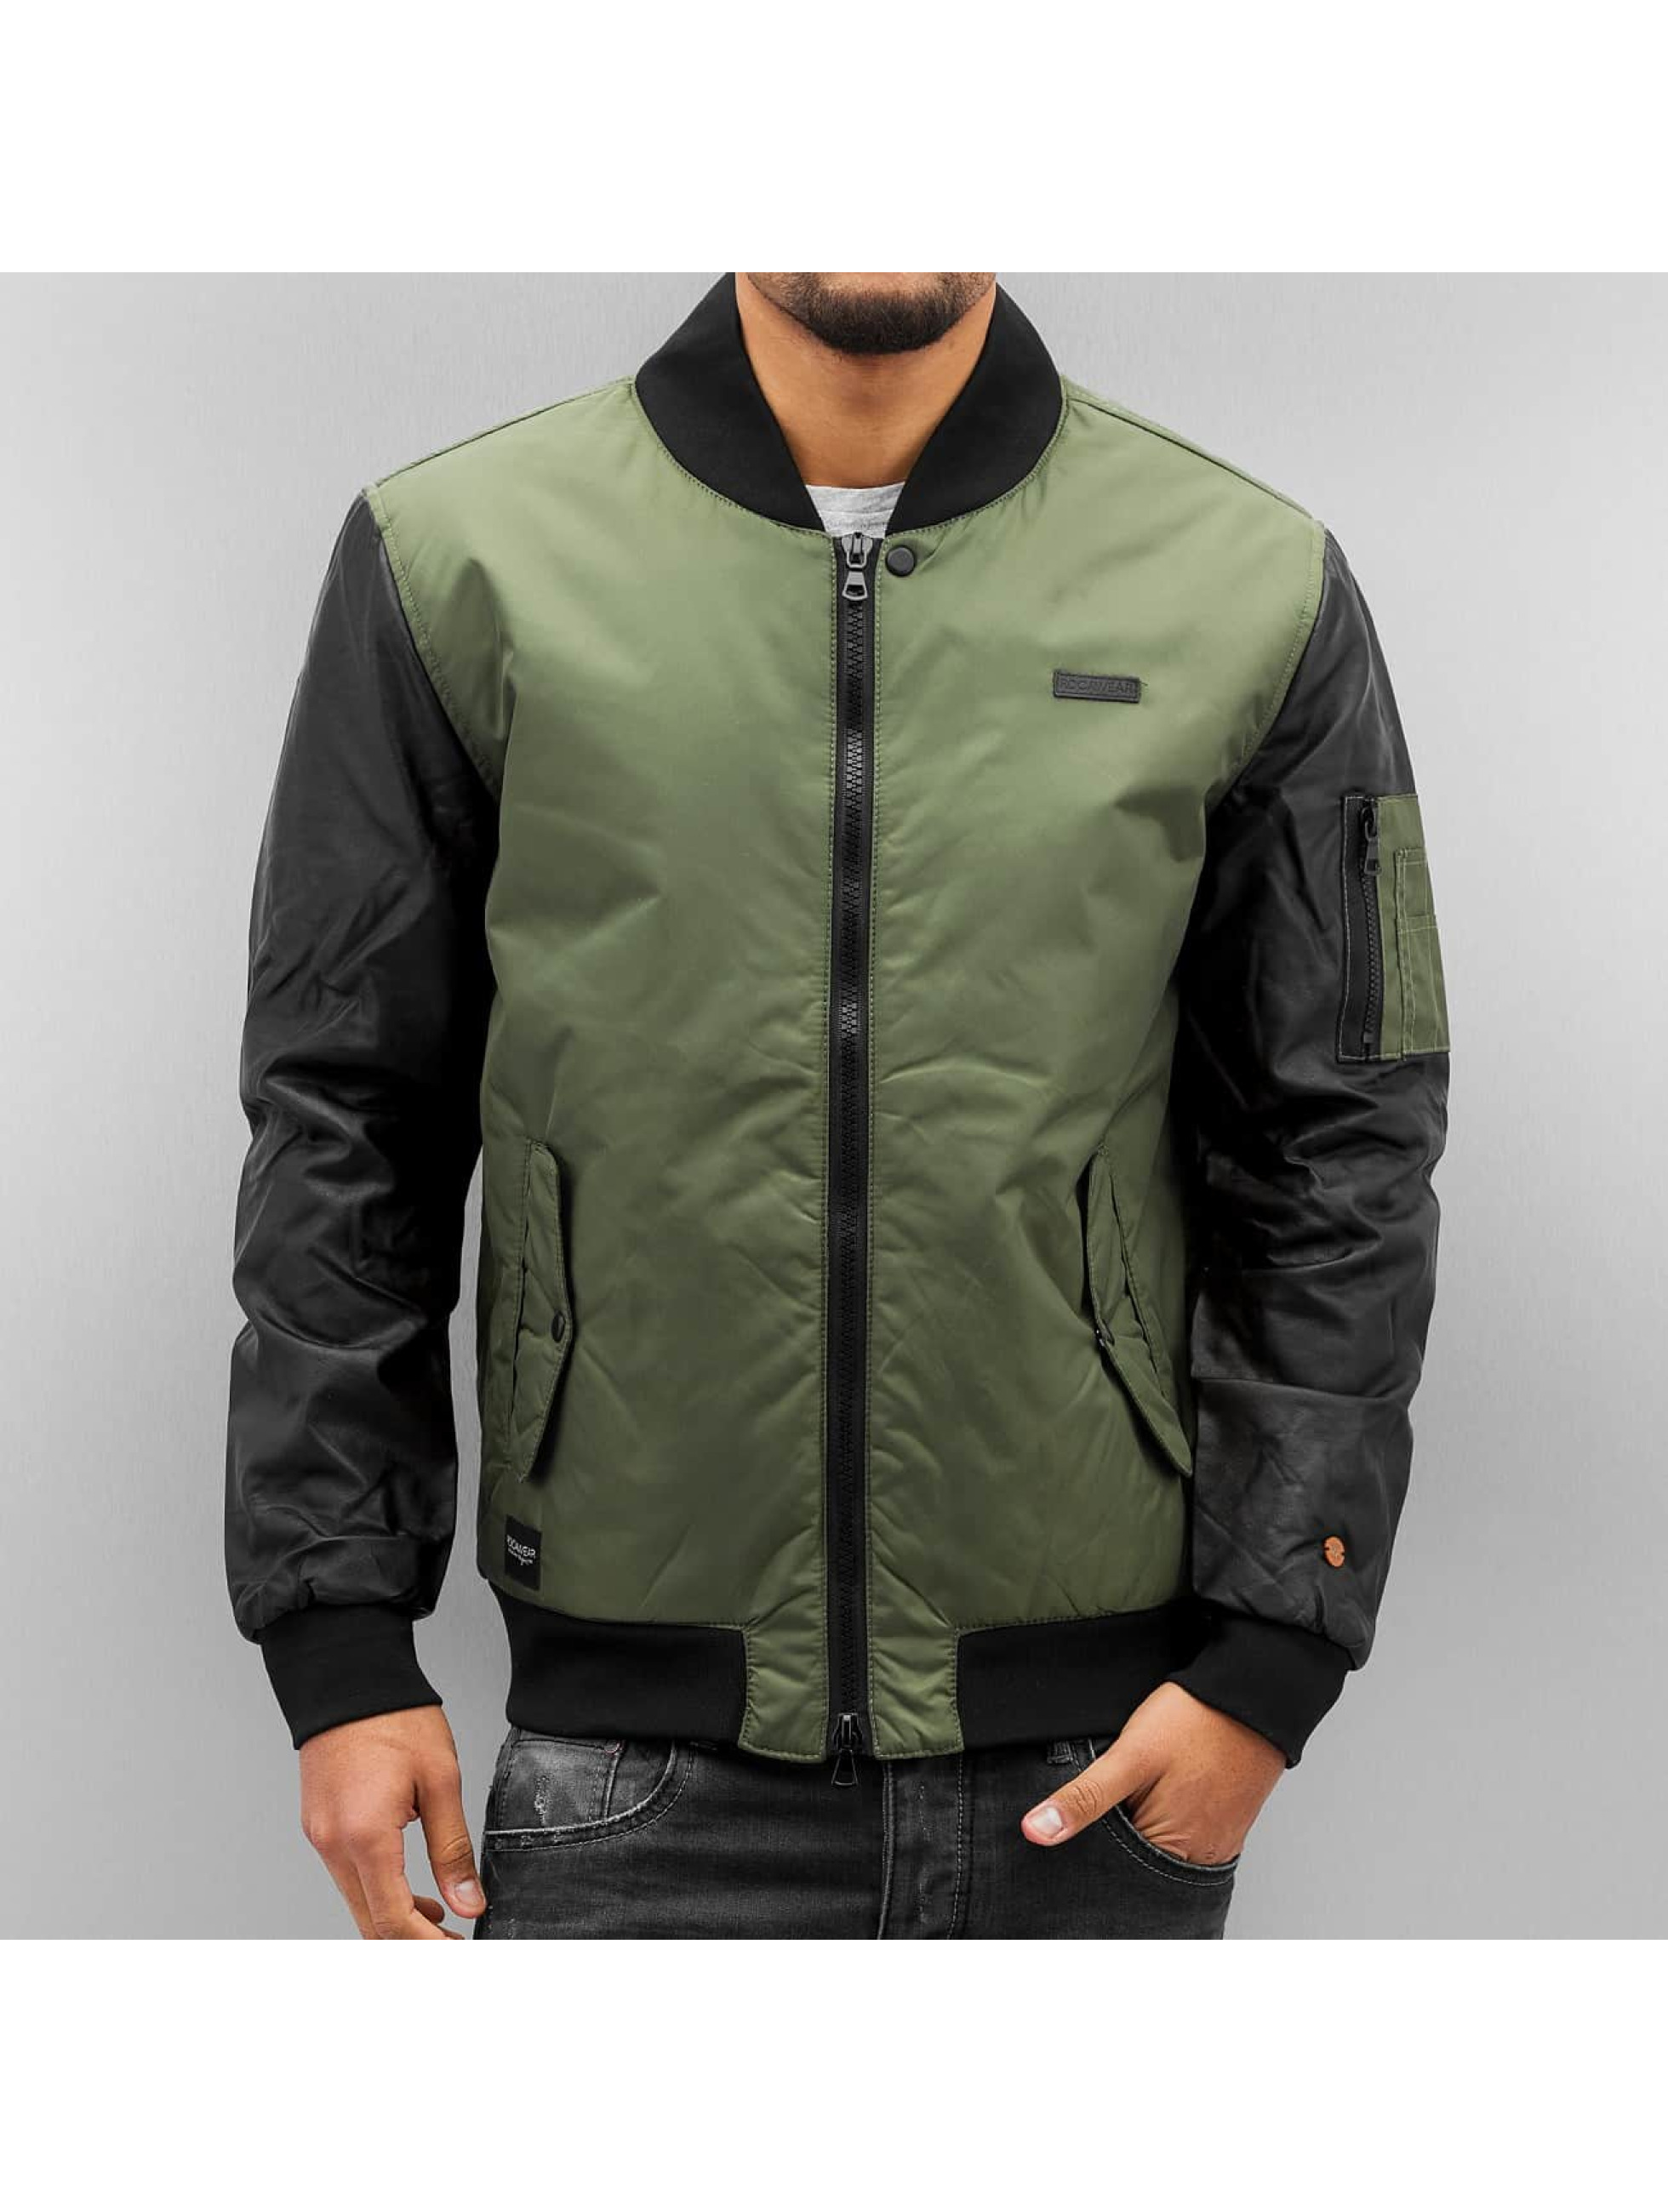 Rocawear-Uomini-Giacche-Giacca-invernale-Nick